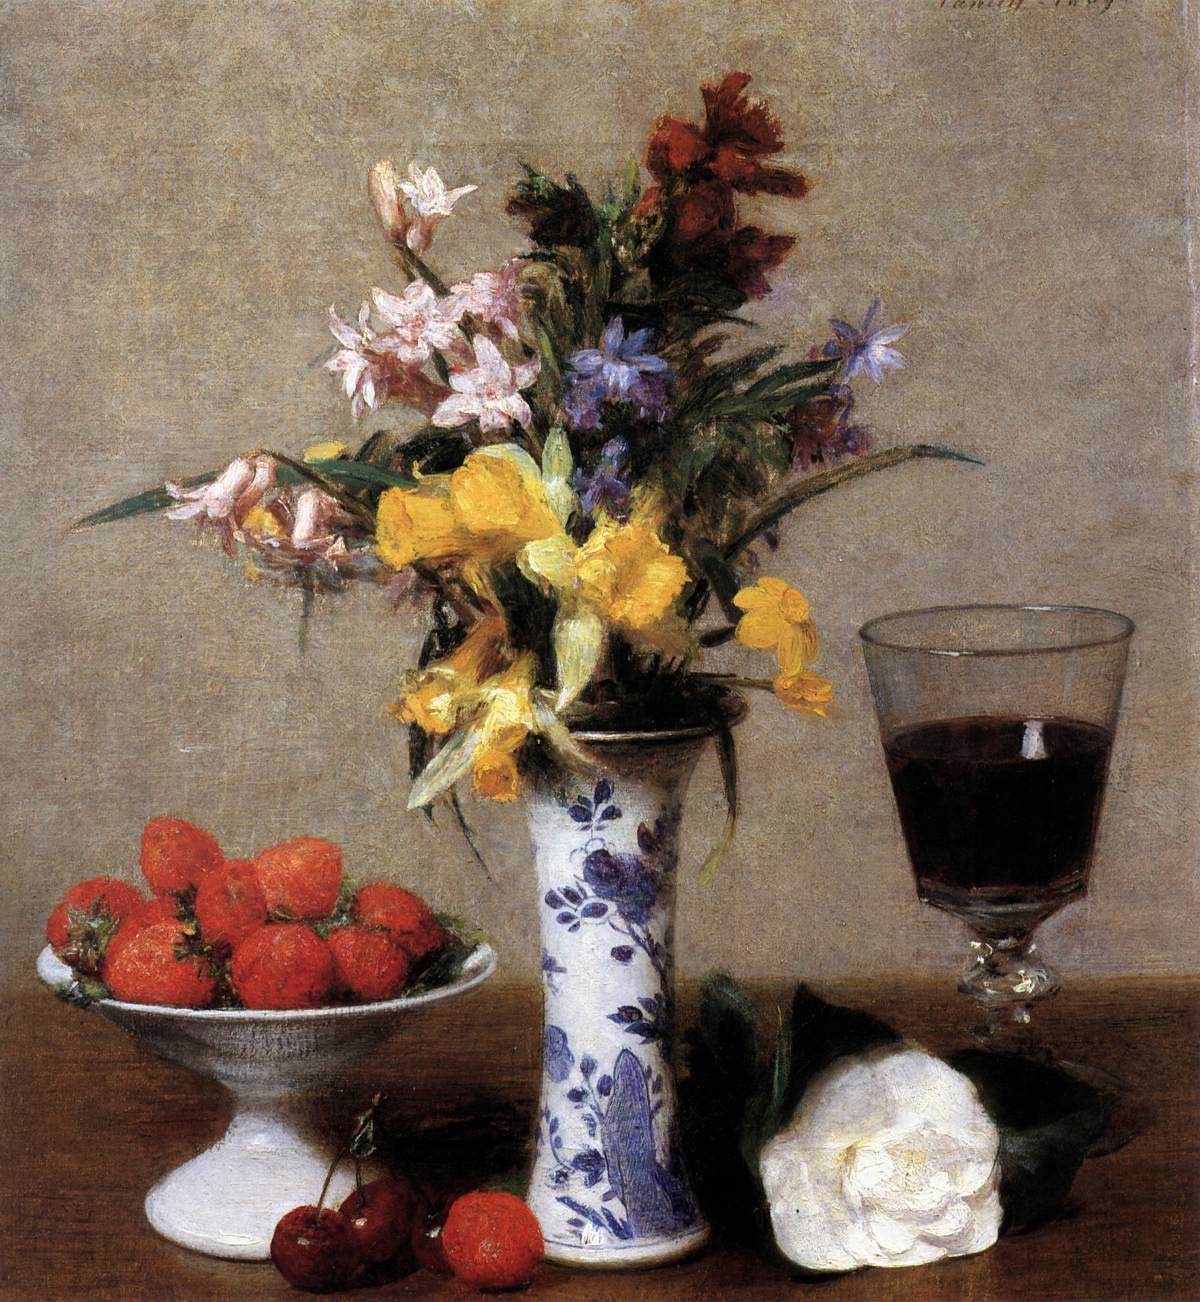 Henri Fantin-Latour, Still-Life with Flowers and Fruit, 1865, Oil